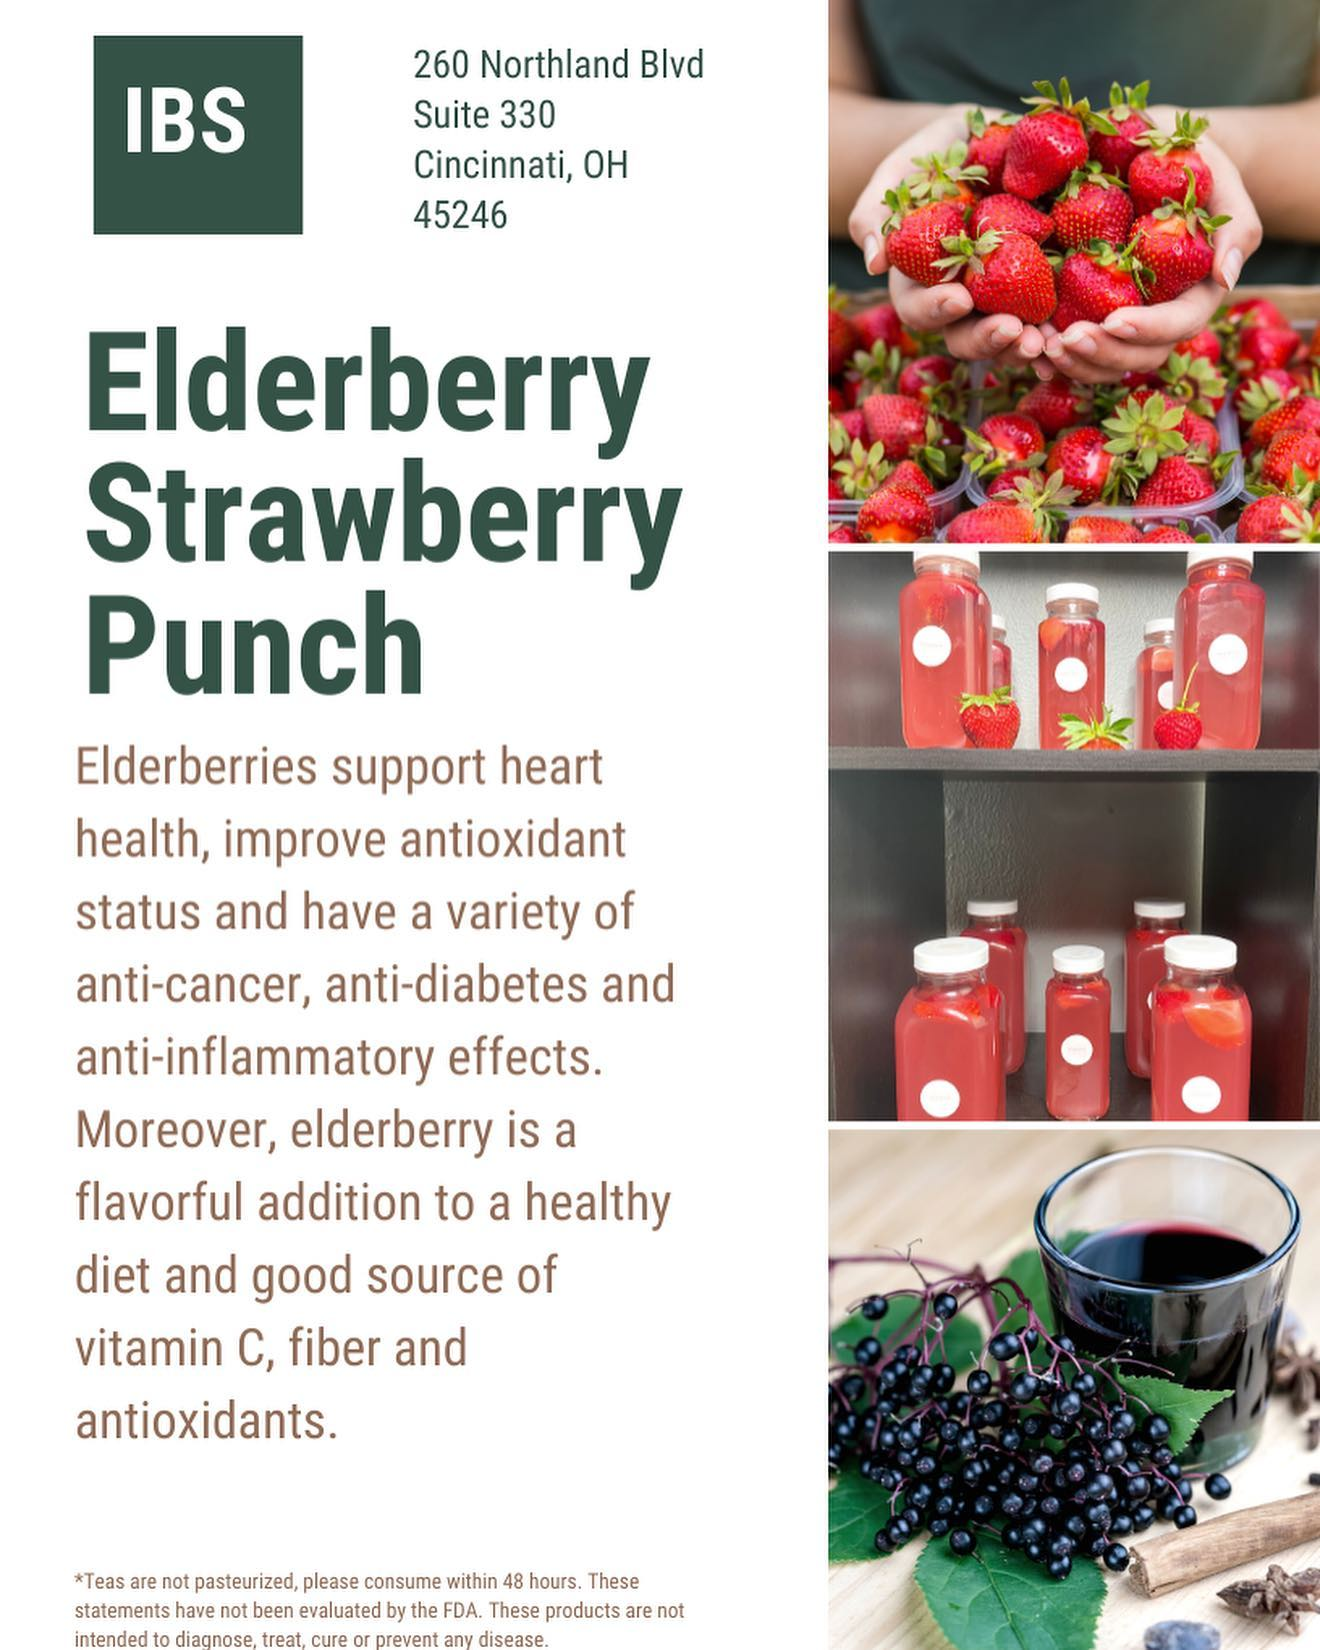 Elderberry Strawberry Punch.jpg